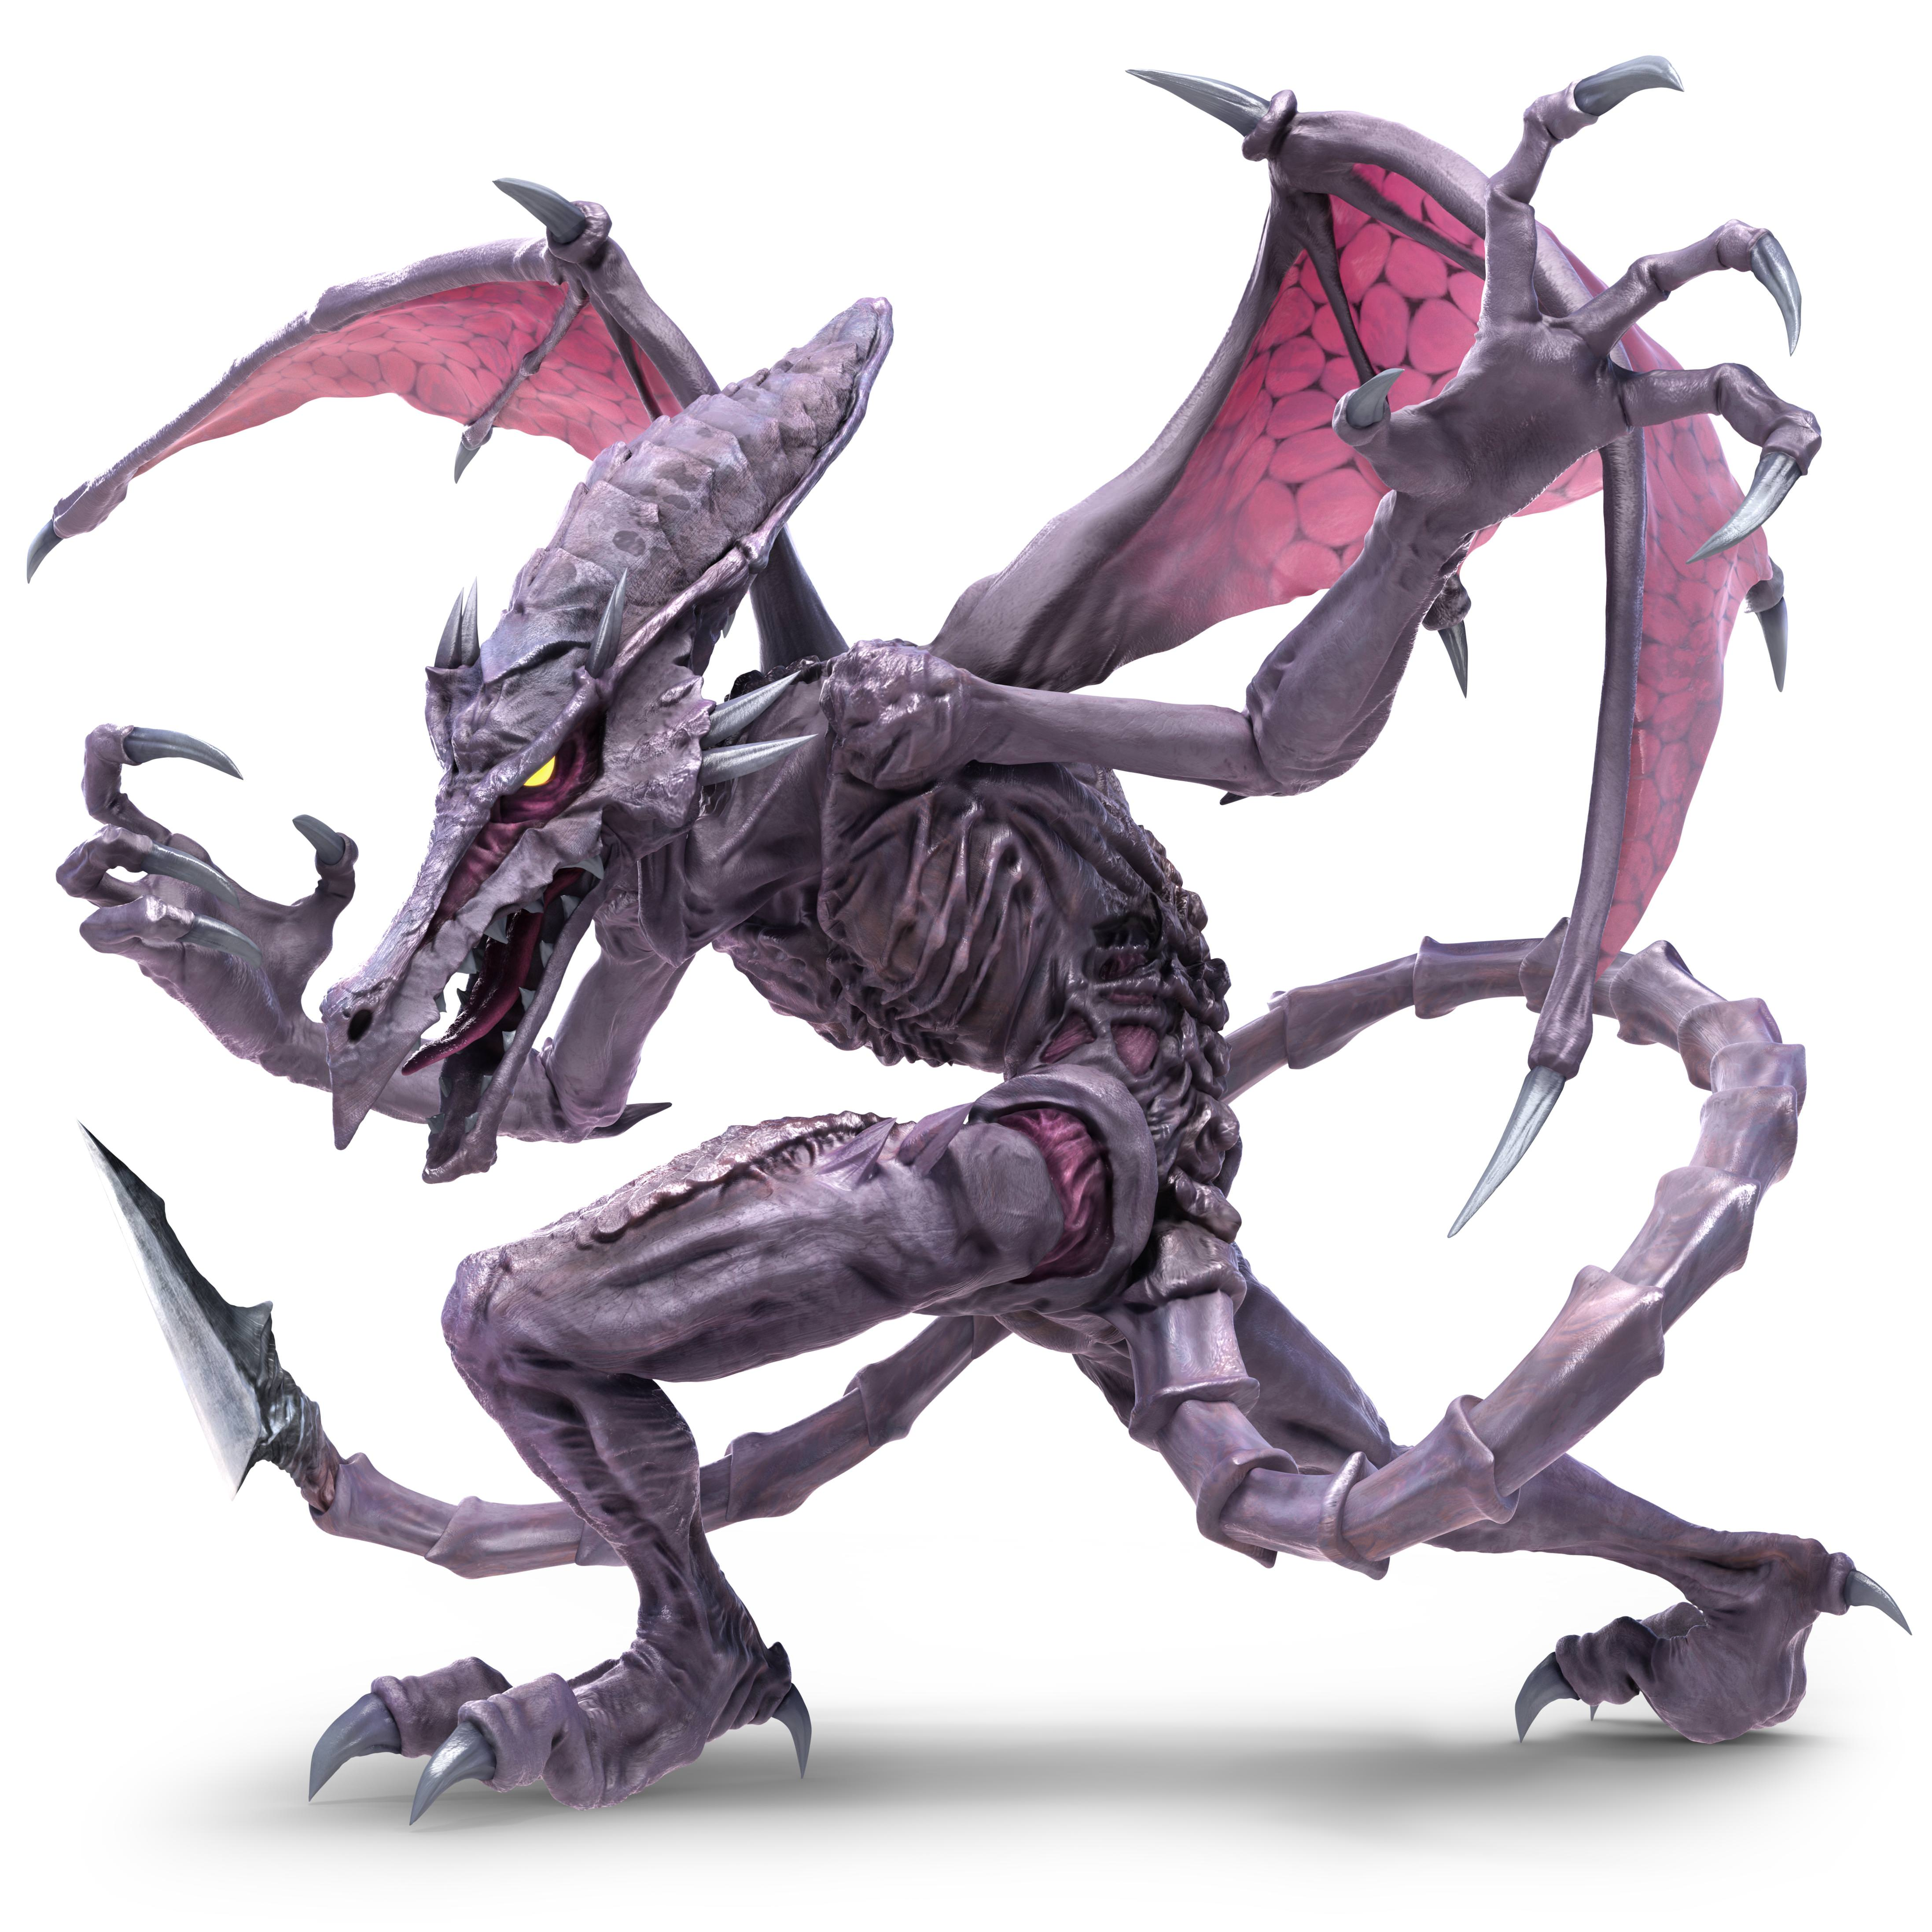 Super Smash Bros Ultimate How To Unlock Ridley